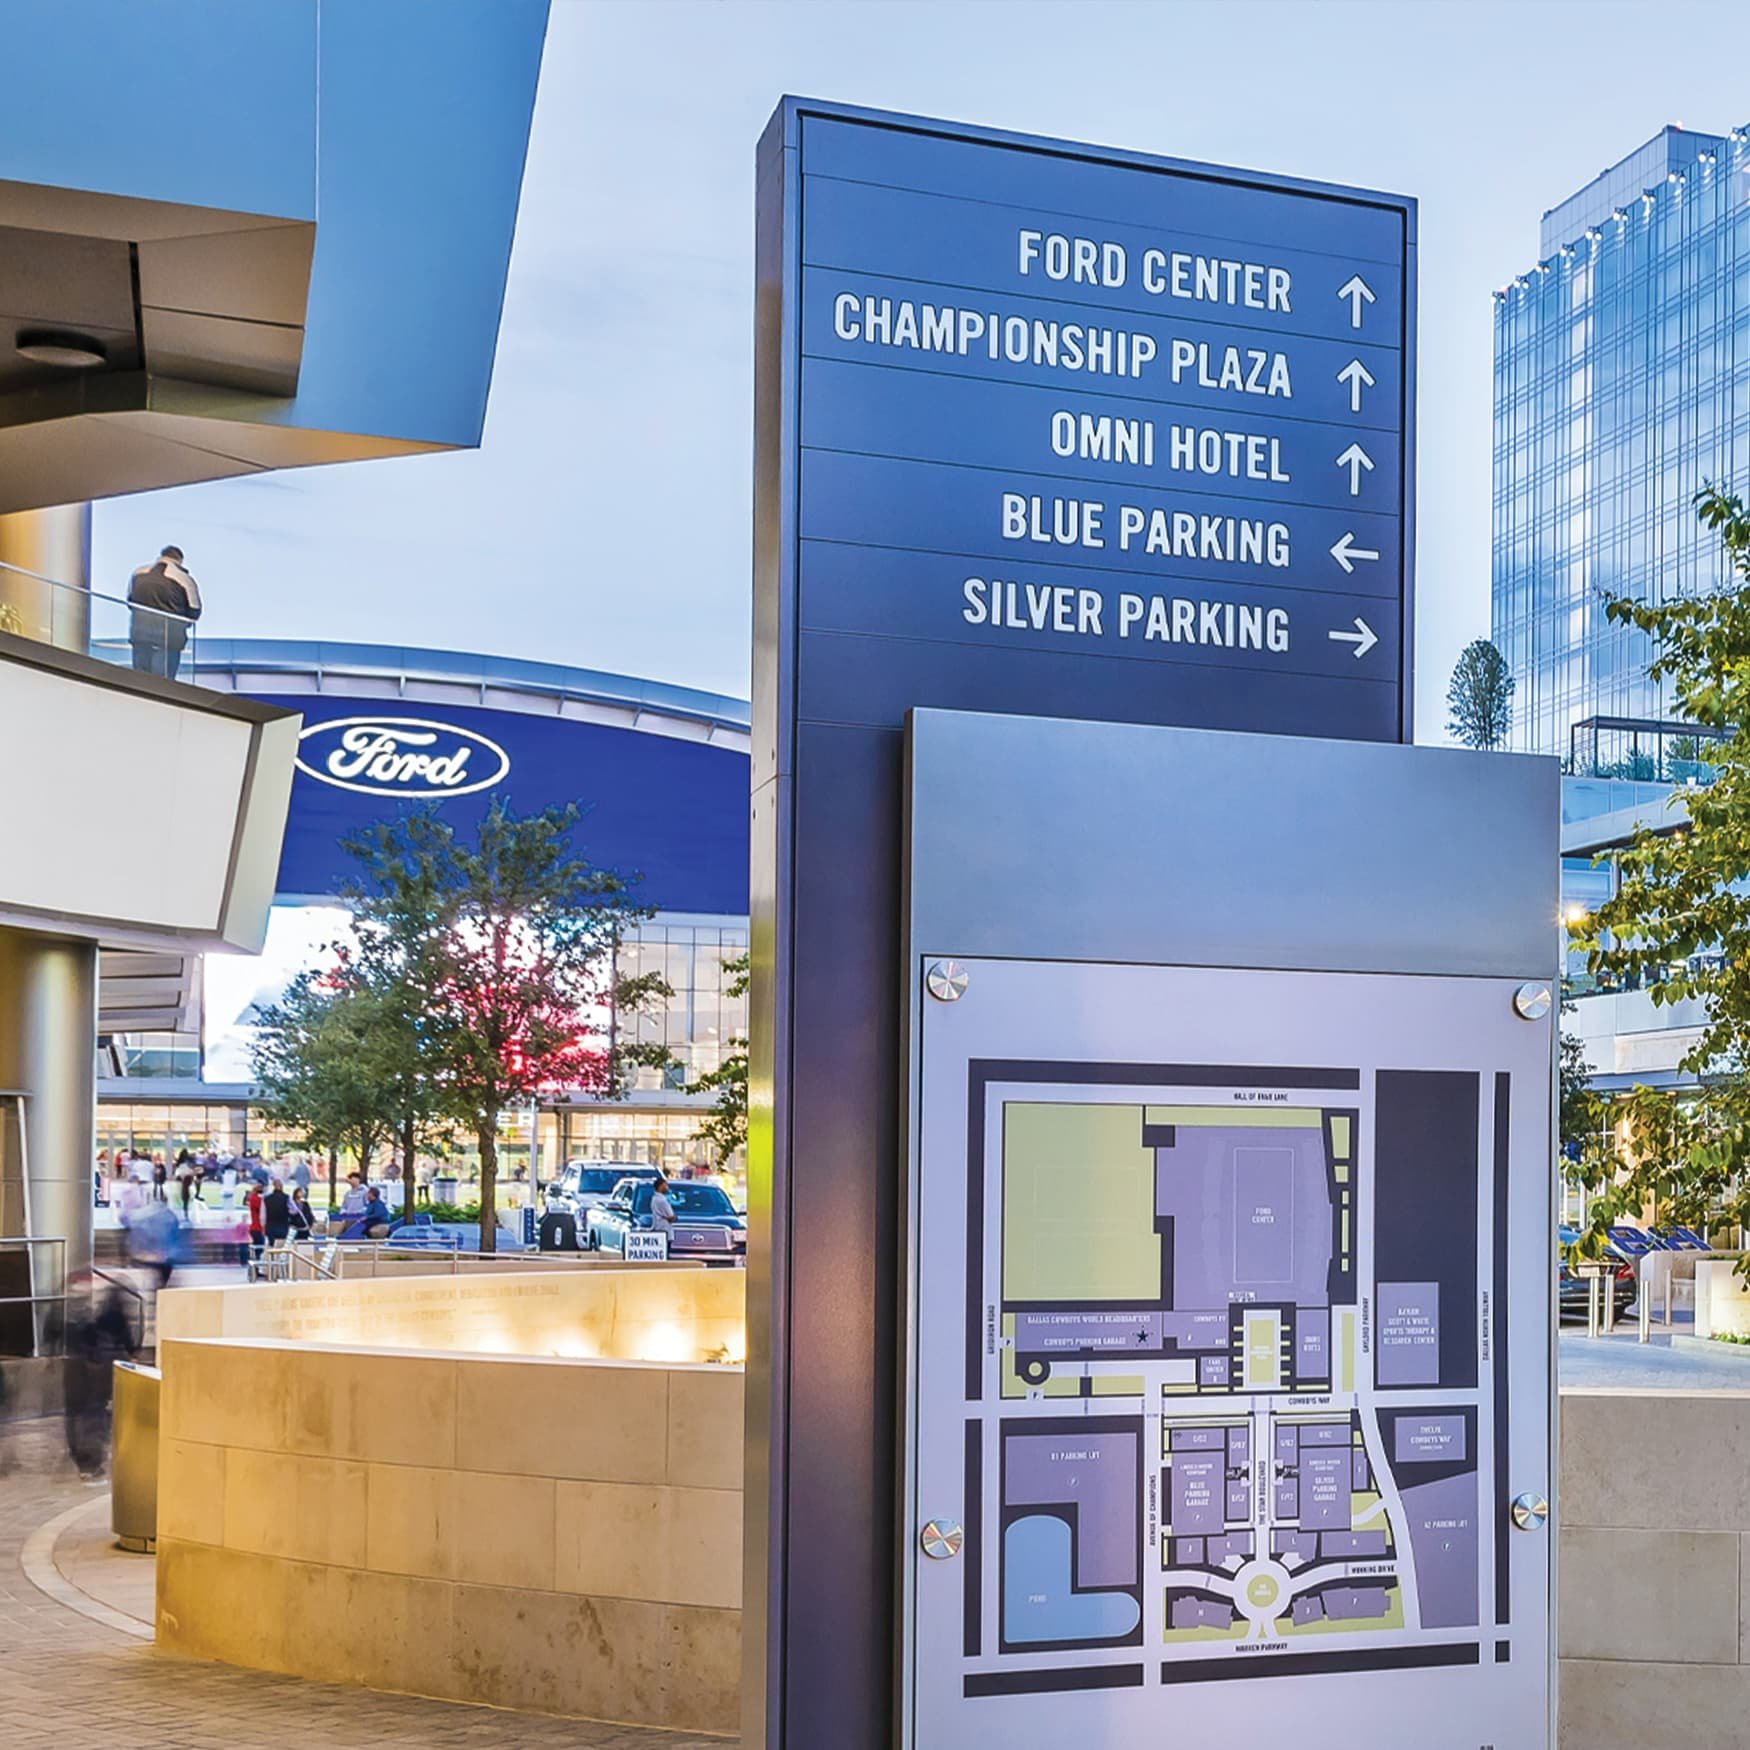 Dallas Cowboys headquarters wayfinding signage and directory map